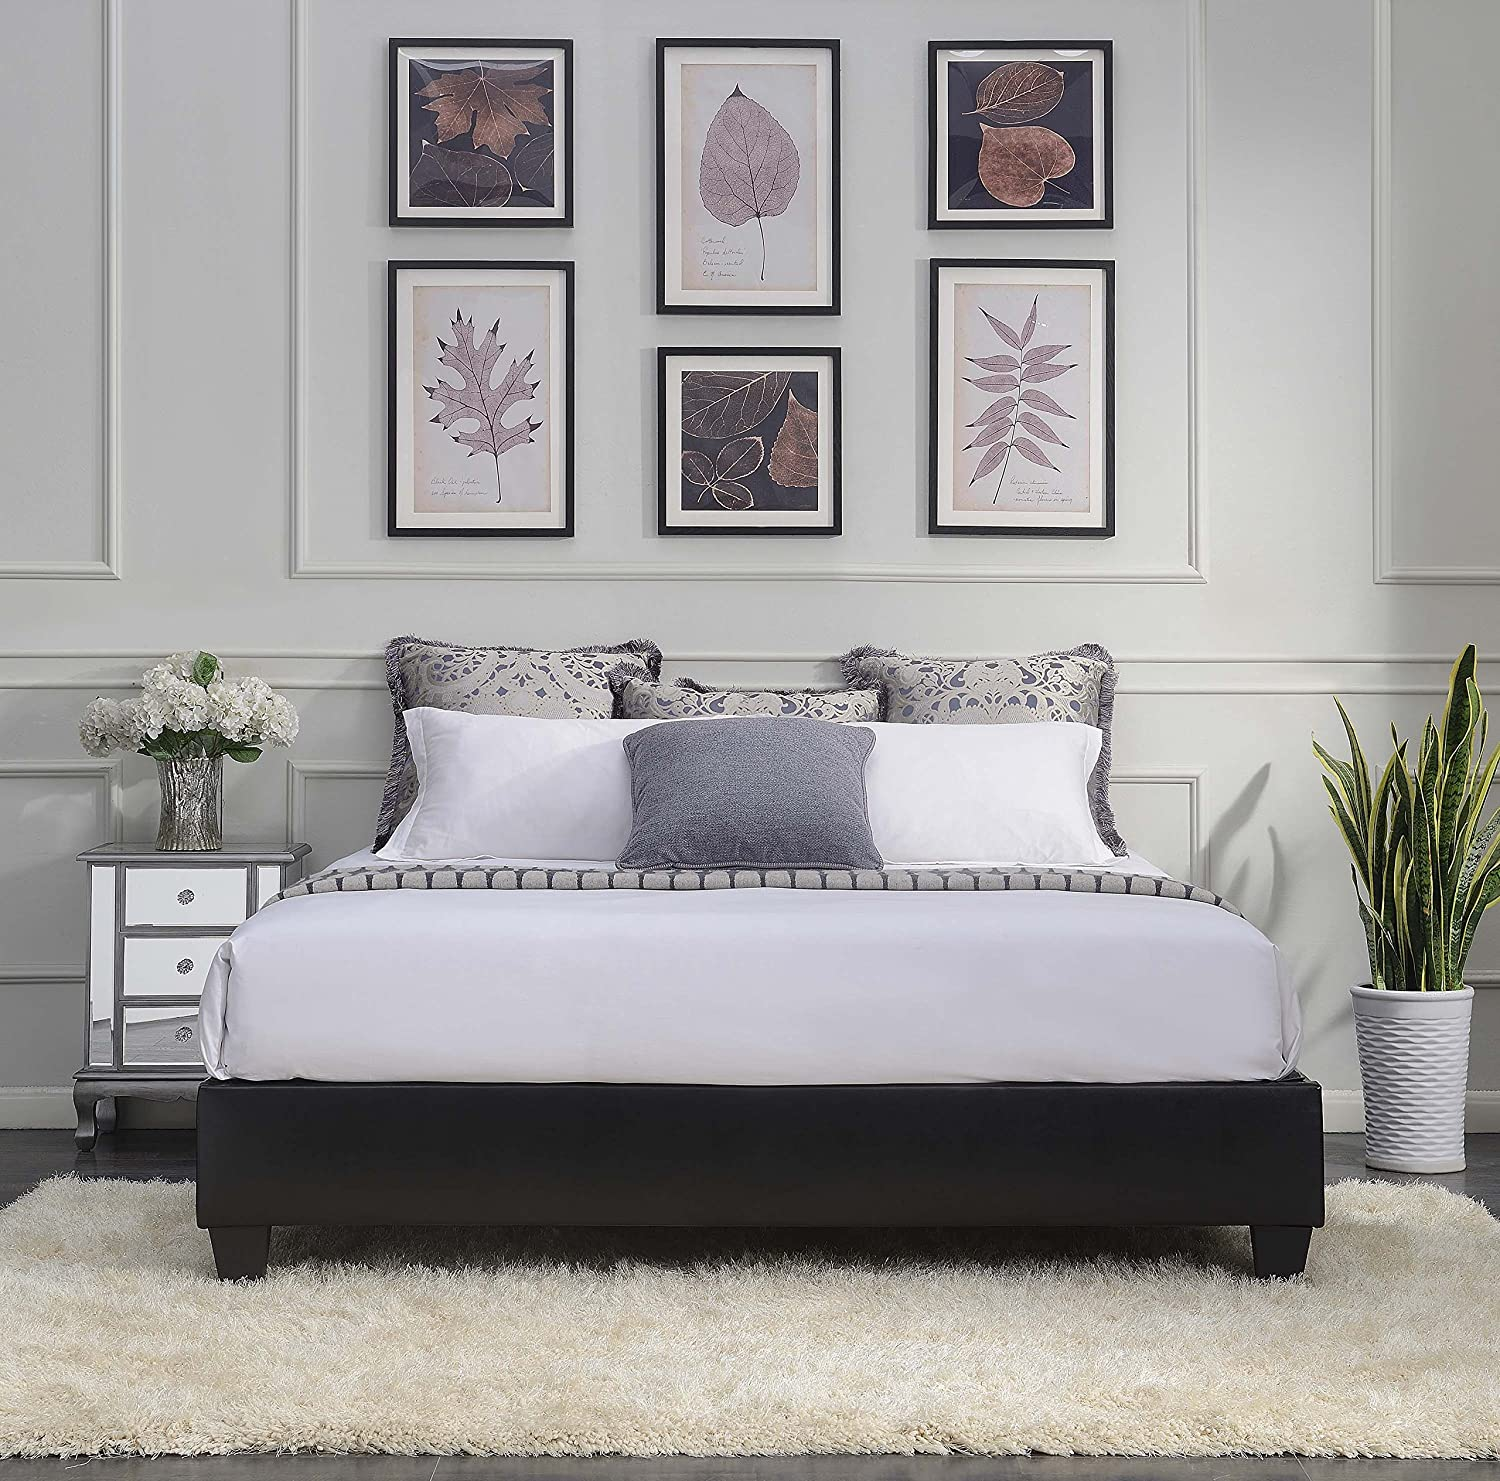 Max 48% OFF Picket Time sale House Furnishings Abby King Contemporary Bed Bla Platform